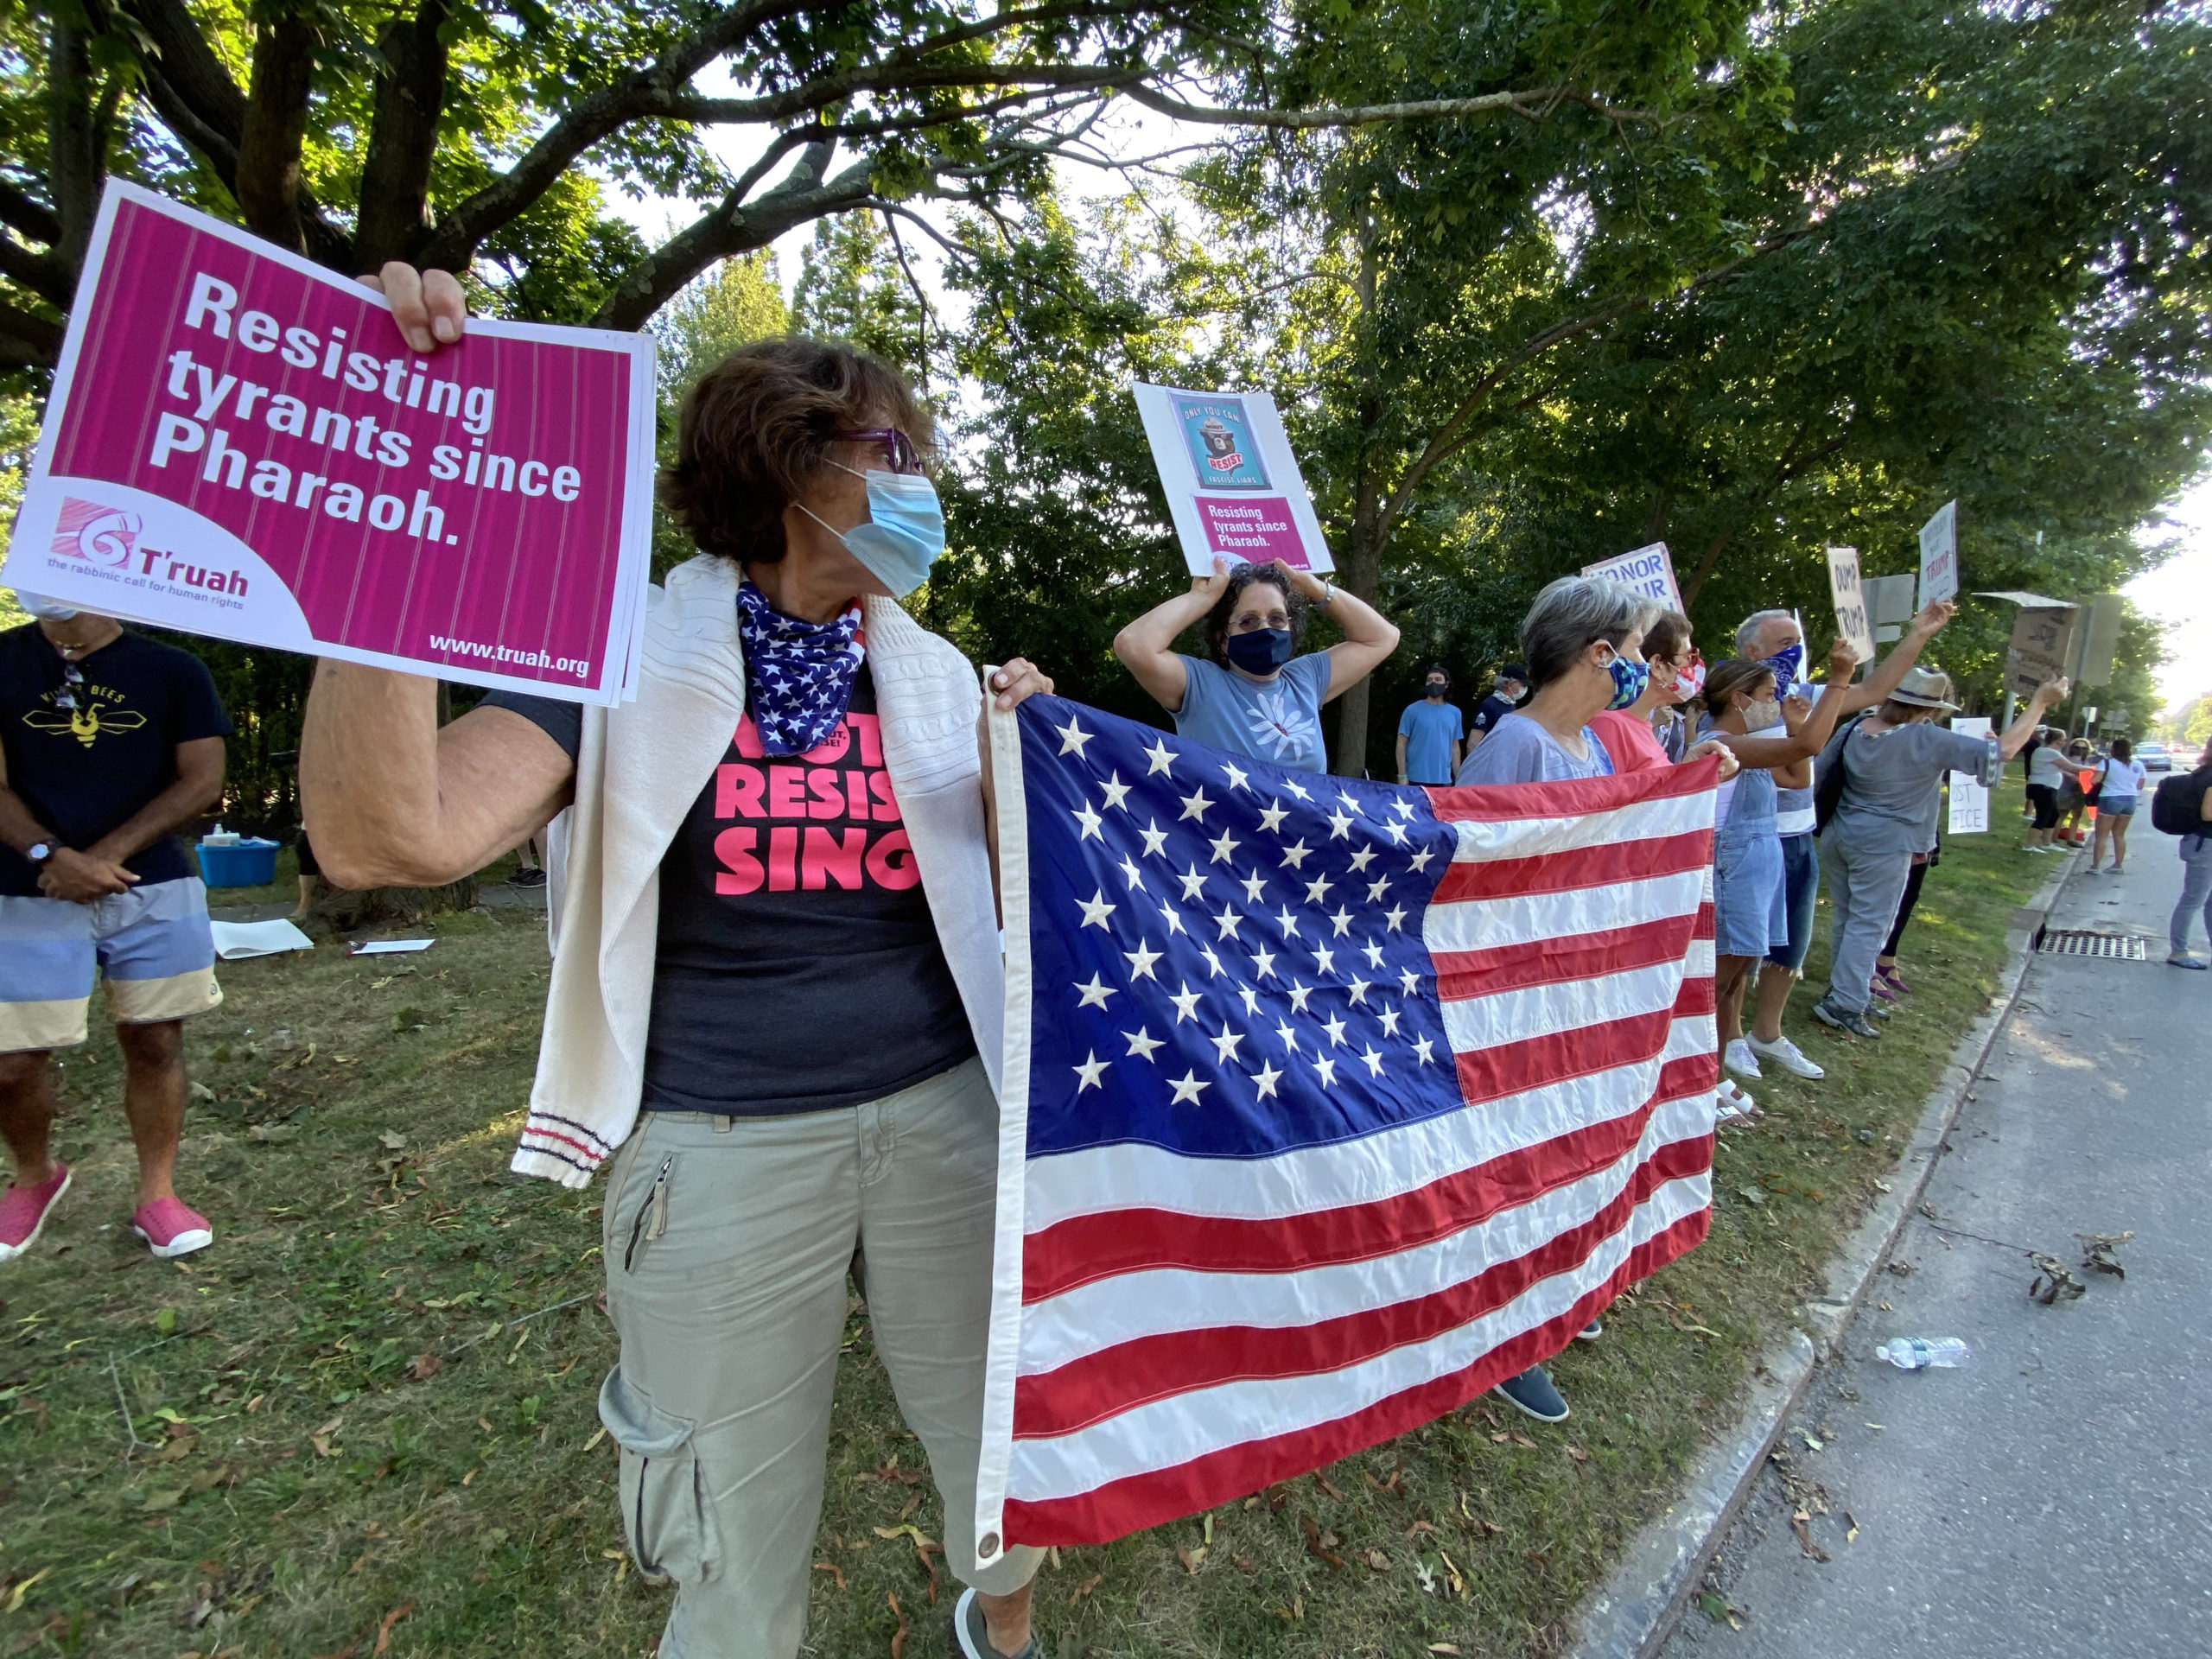 A protest was held in Southampton Village on Saturday afternoon during President Donald Trump's visit for a fundraising event. DANA SHAW